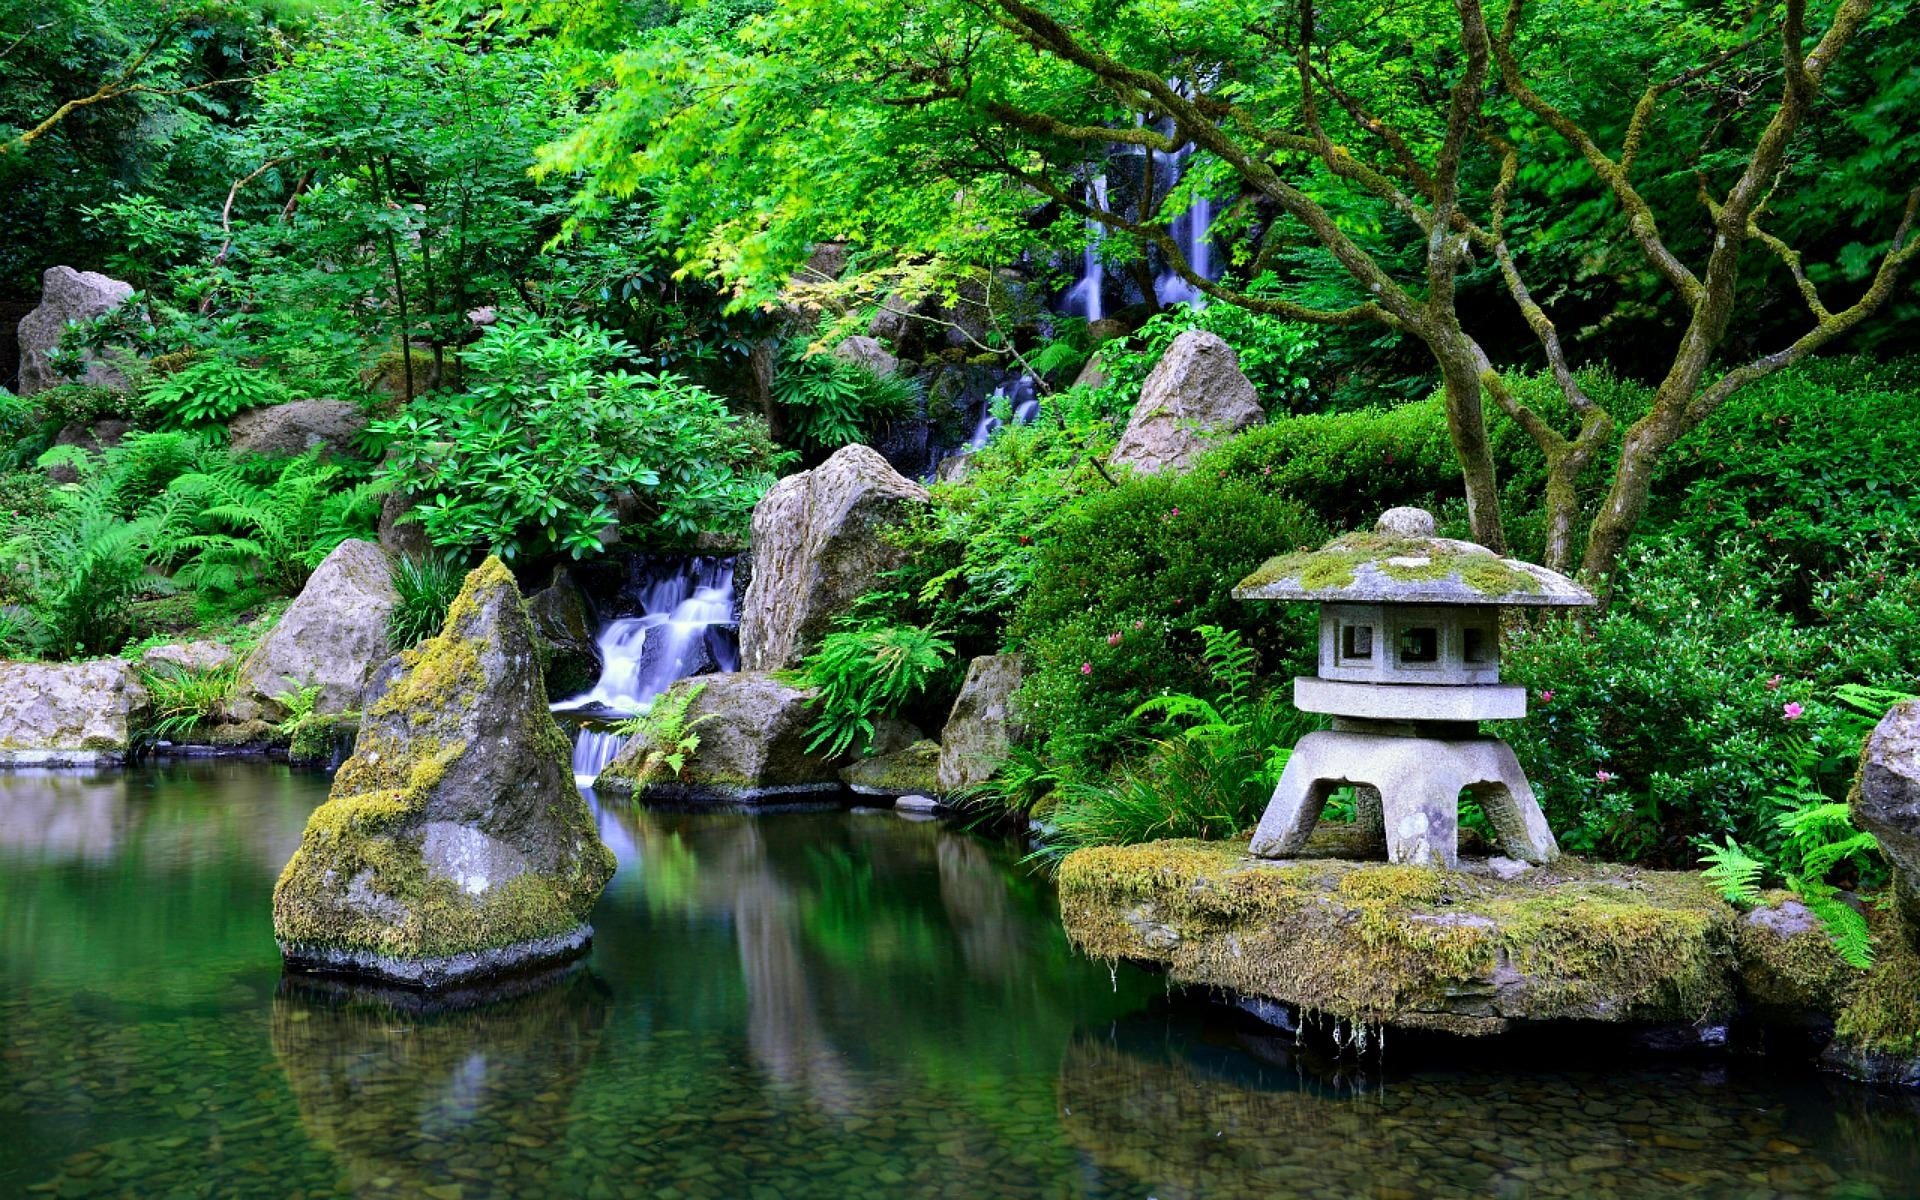 japanese garden wallpapers - wallpaper cave | epic car wallpapers